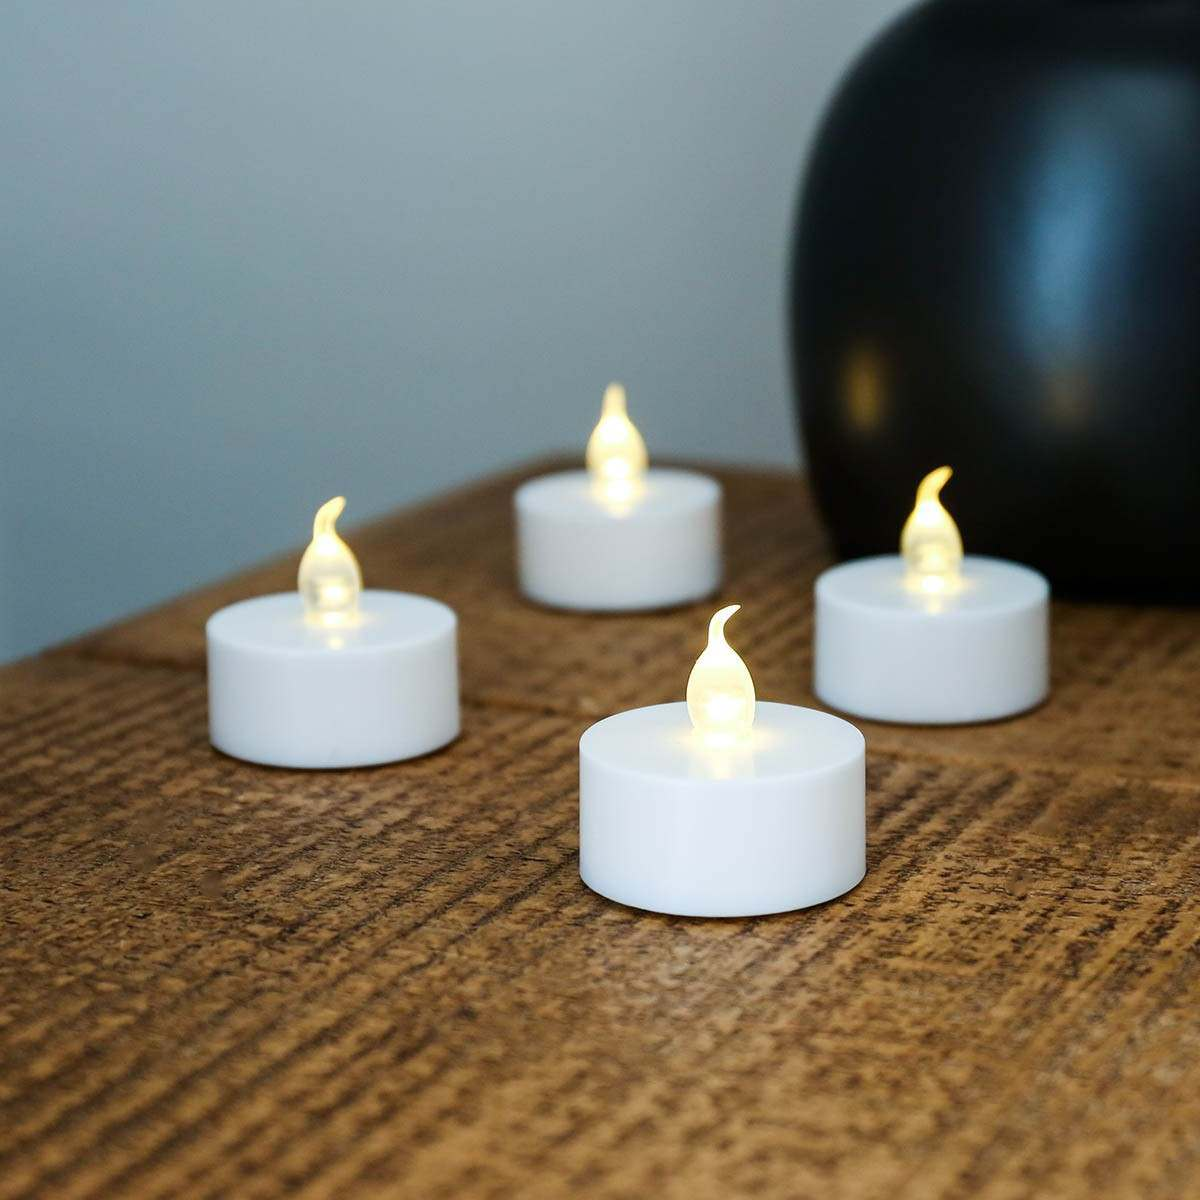 4 Battery Operated LED Flickering Tea Light Candles, White Base